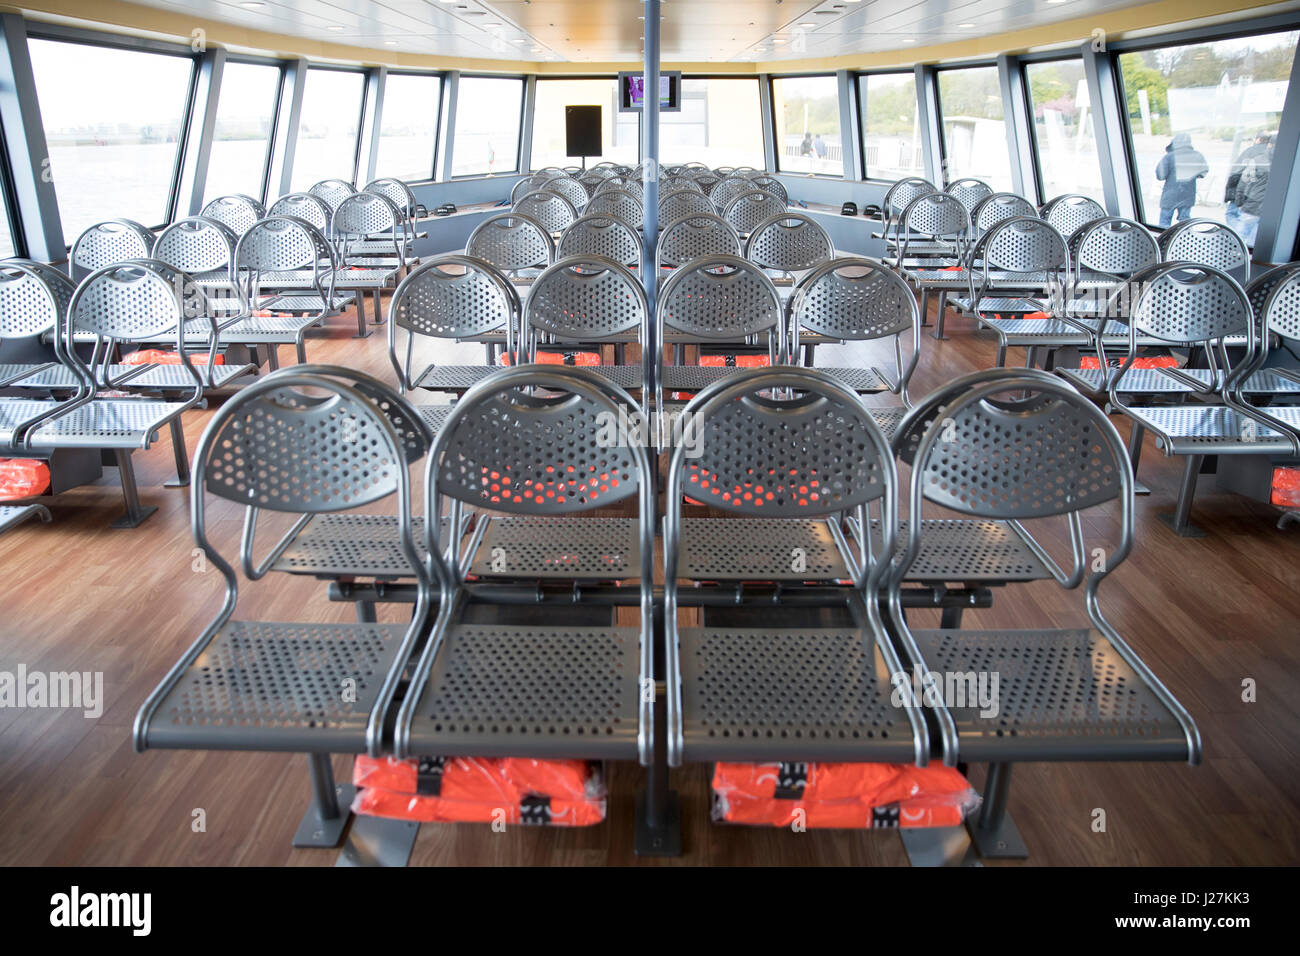 Empty passenger seats can be seen on the new HADAG ferry 'MS Elbphilharmonie' in Hamburg, Germany, 25 April - Stock Image